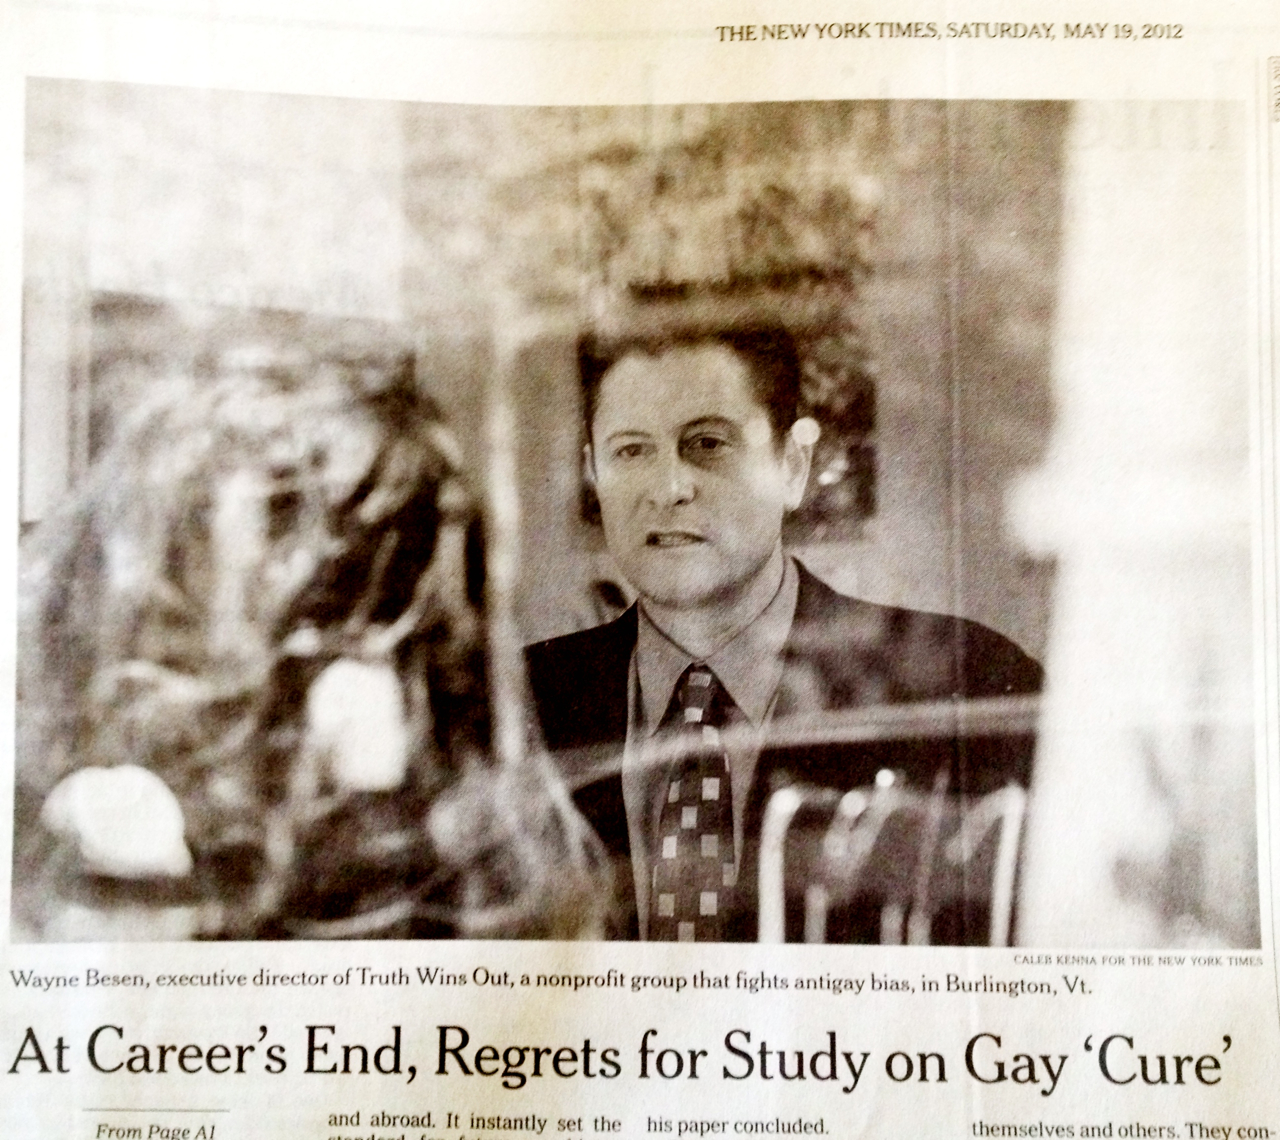 New York Times photo Alert: Major New York Times Story On Dr. Robert Spitzer Renouncing Ex Gay Study